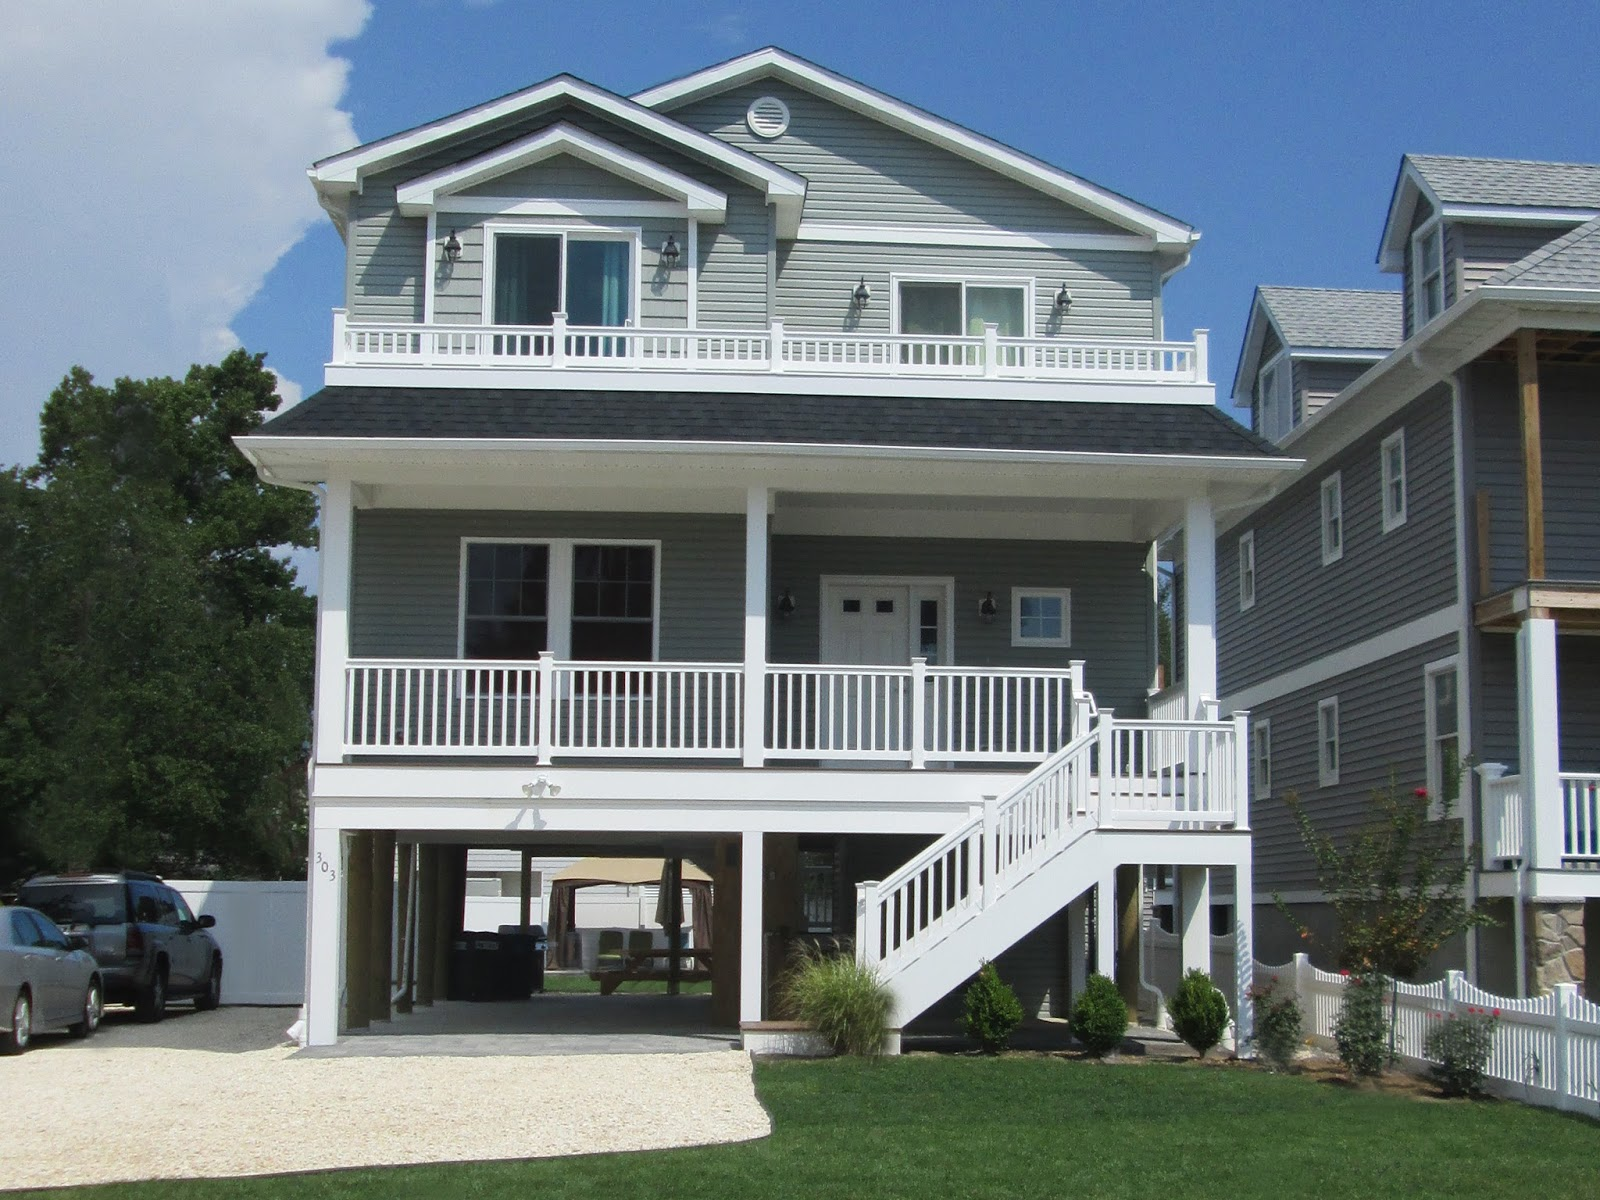 Rba homes residential elevators for custom modular homes for South jersey home builders